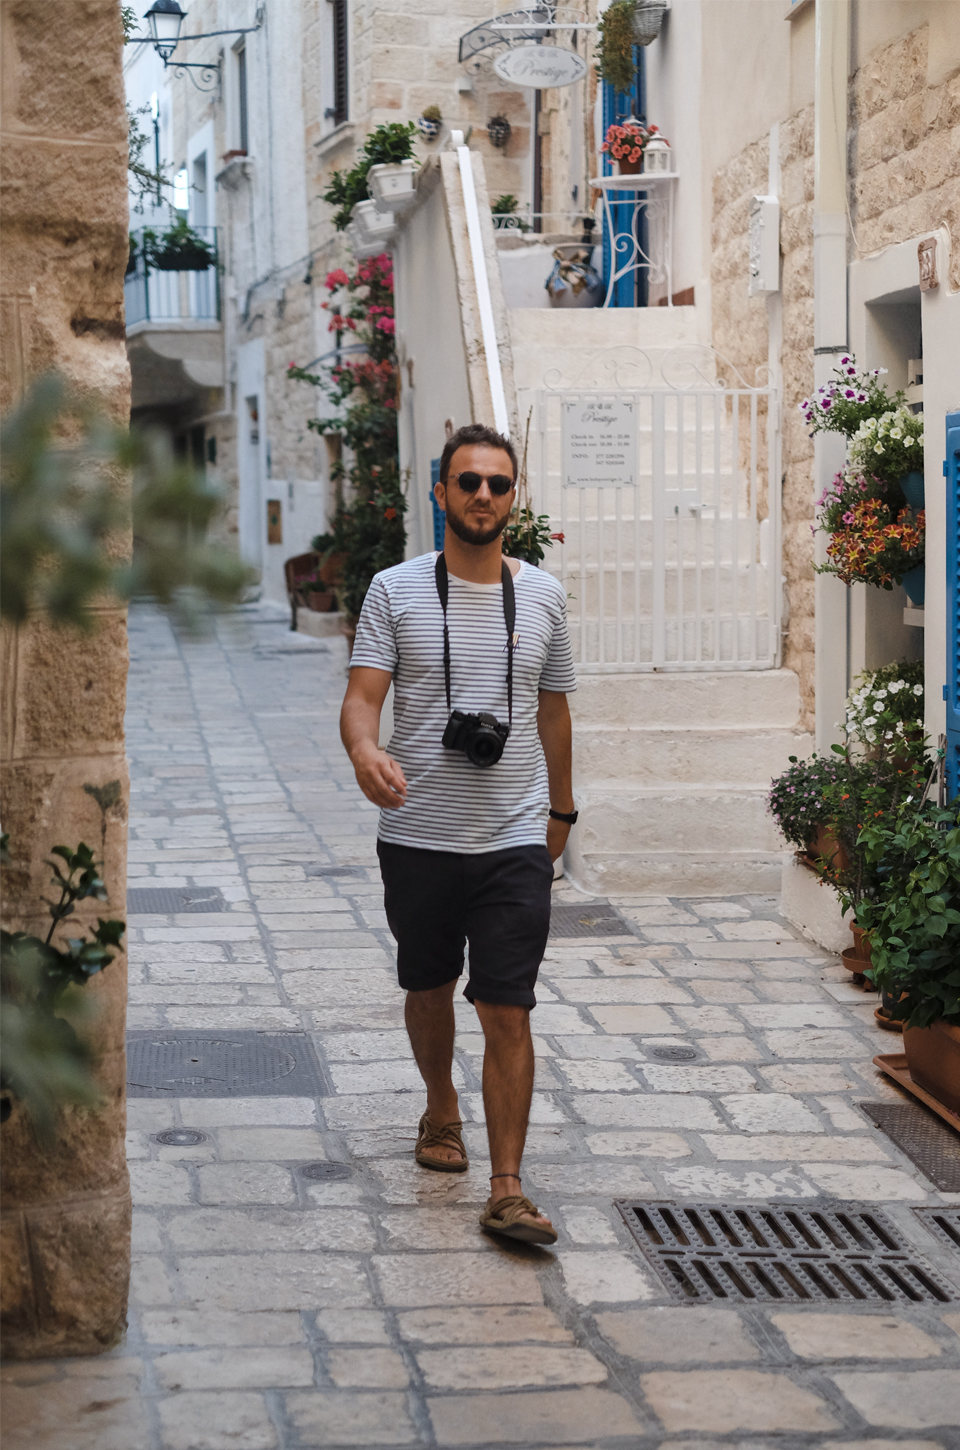 A glimpse of Puglia, a man with a camera and sunglasses so sunglasess walking in the streets of Polignano